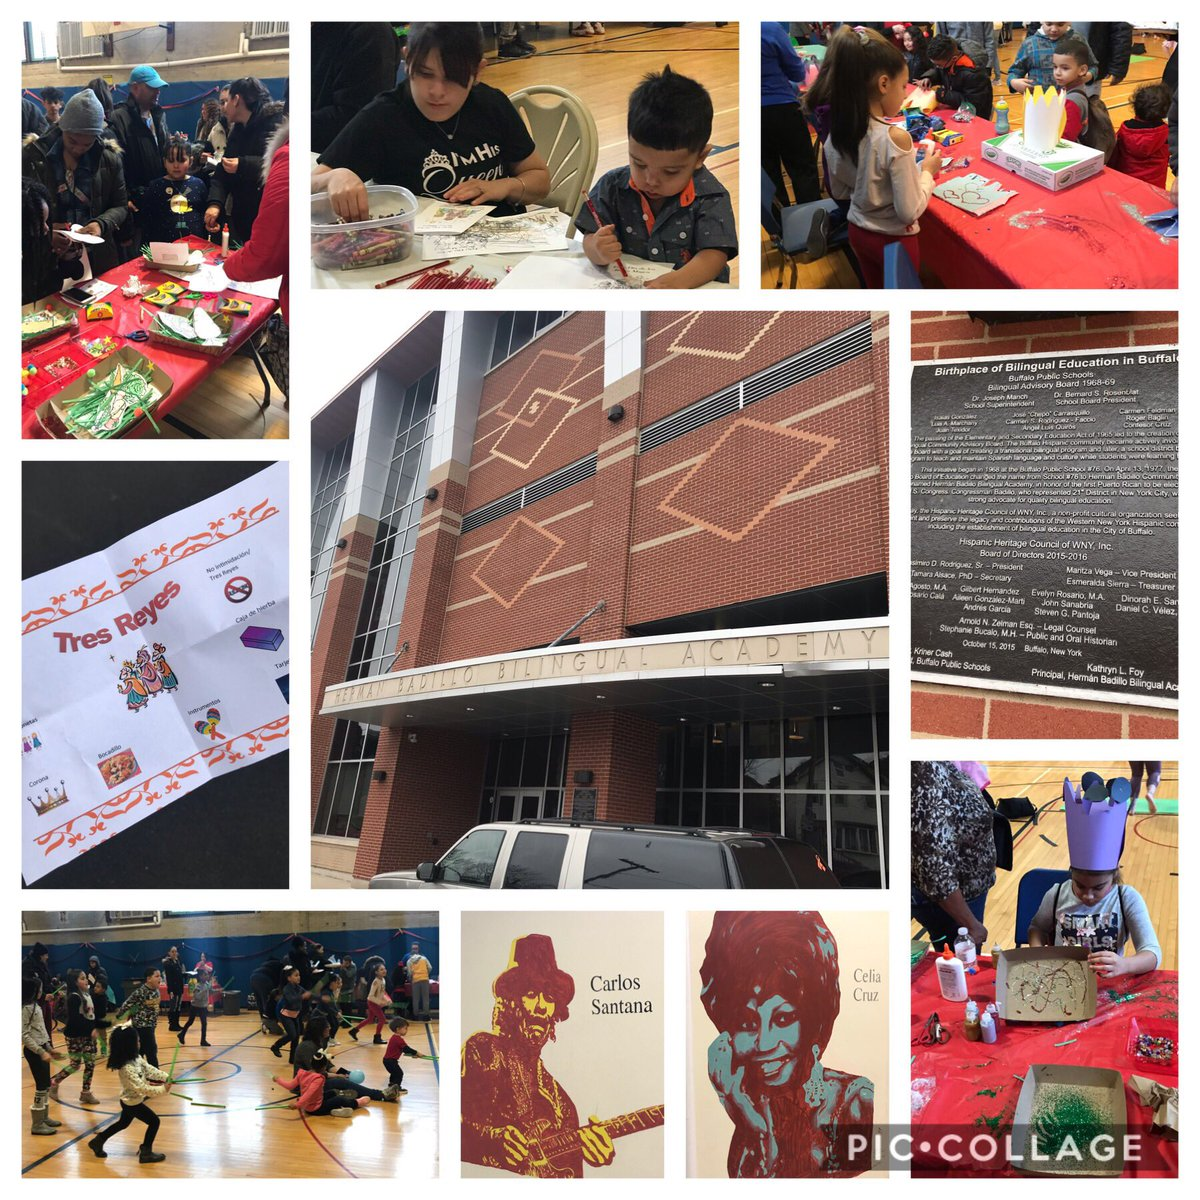 Anibal Soler Jr On Twitter There S No Place Like The Mighty Herman Badillo Bilingual Community School The Birthplace Of Bilingual Education In Buffalo Ny Off To An Amazing Start In The New